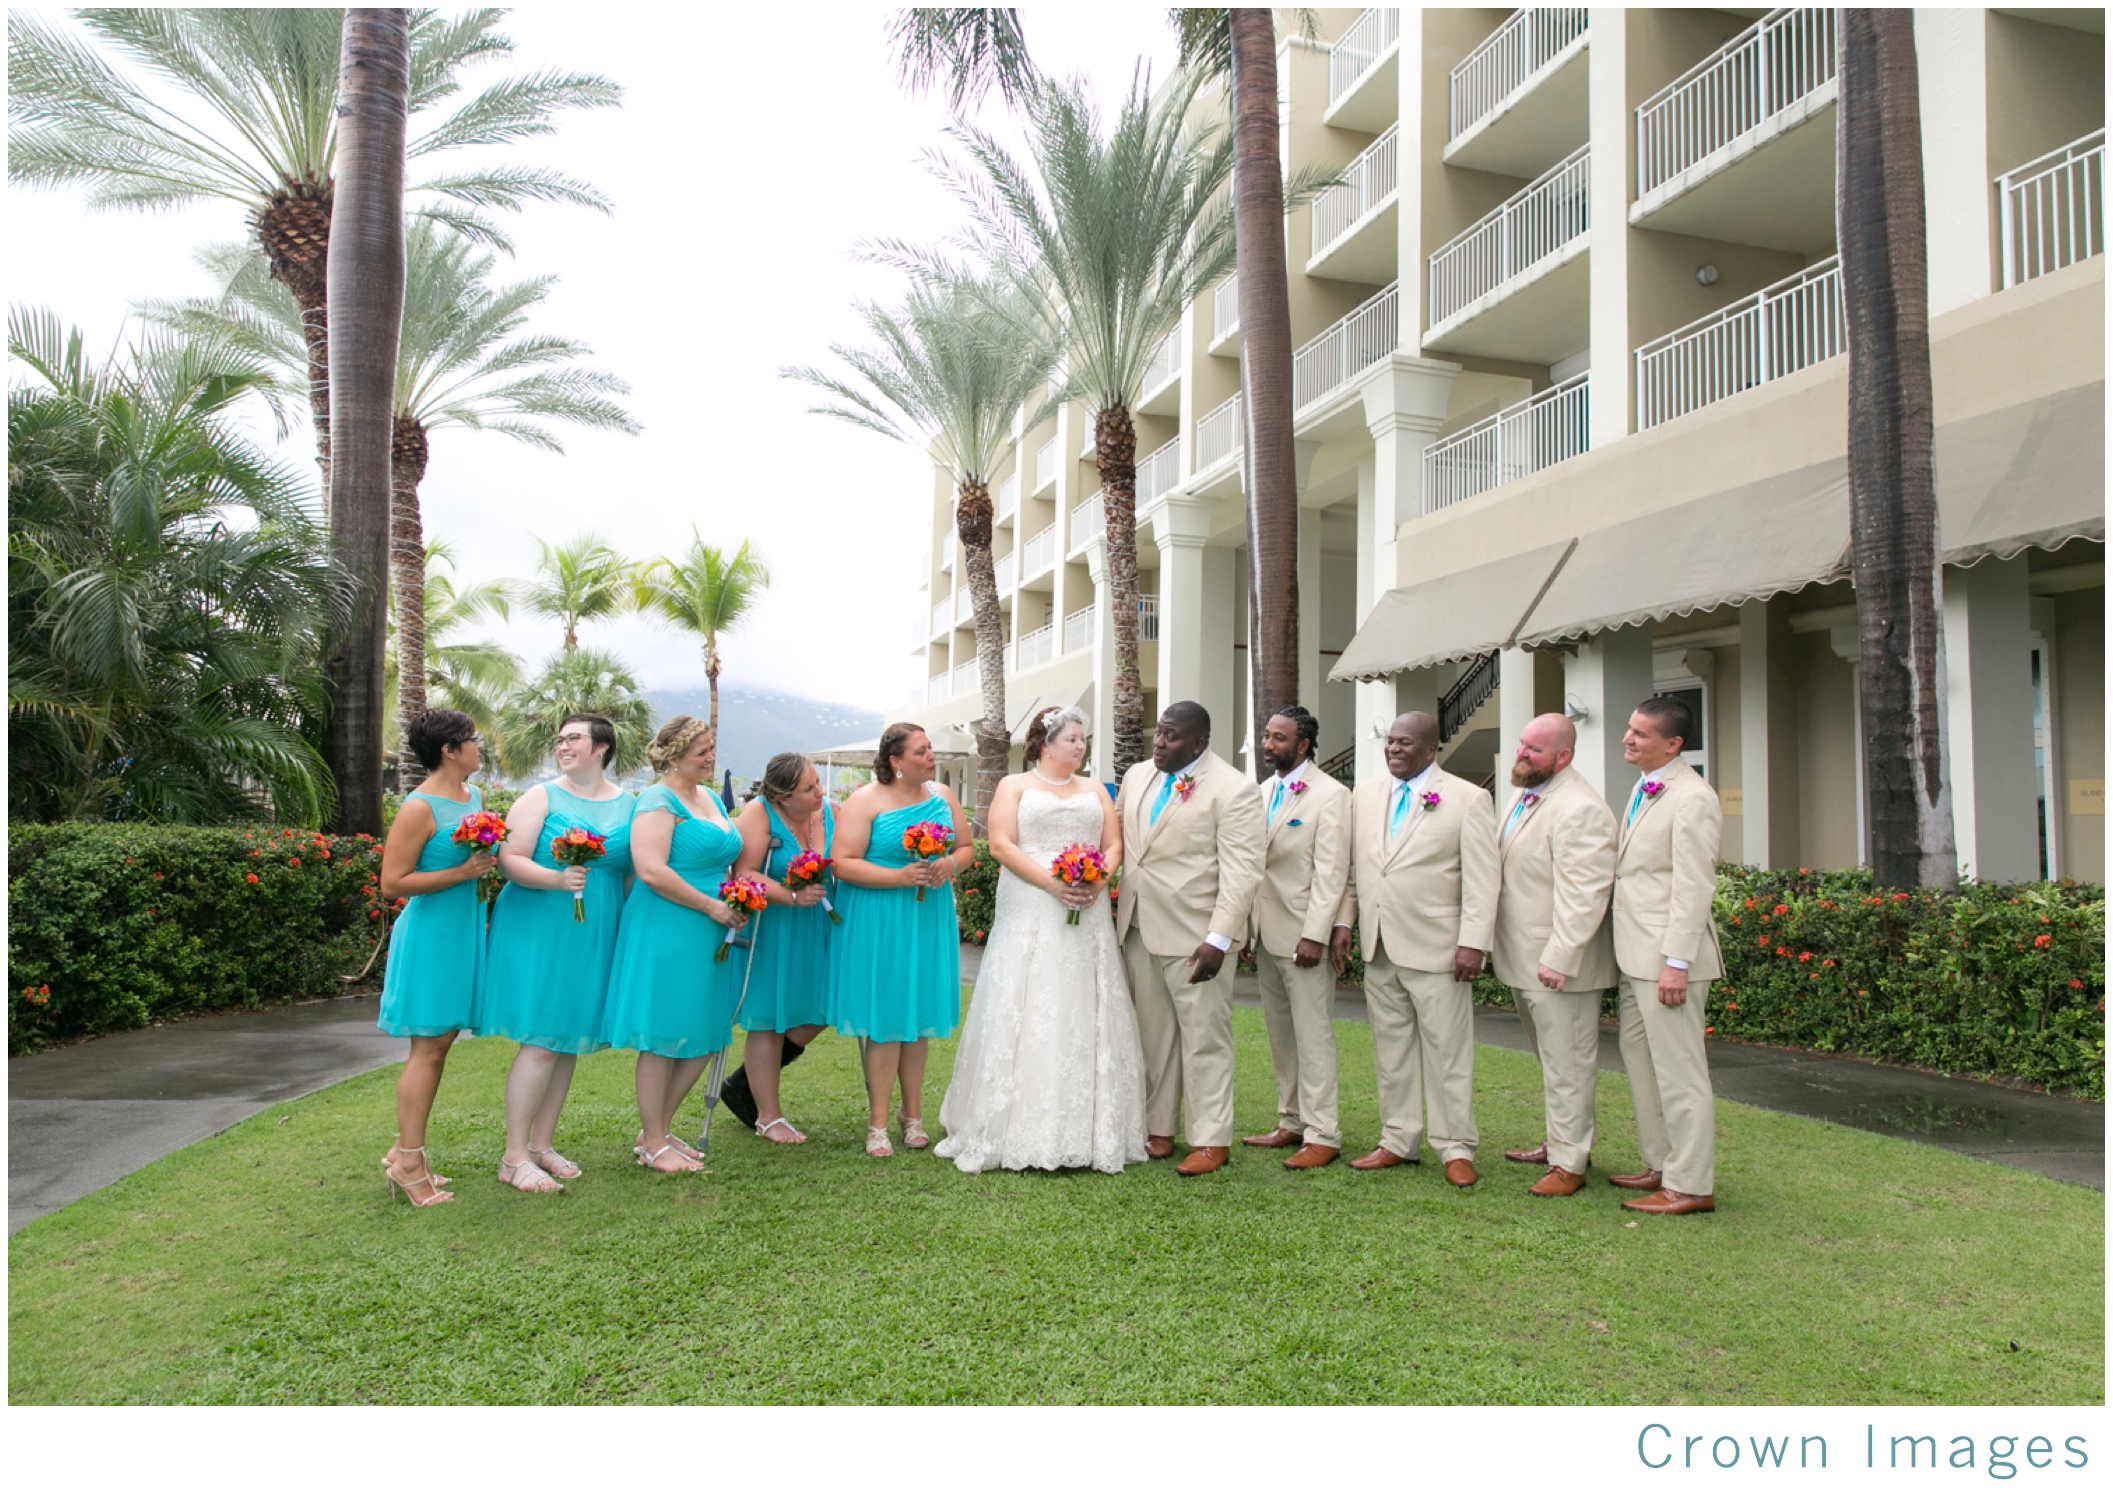 st thomas wedding photos at the marriott crown images_1703.jpg